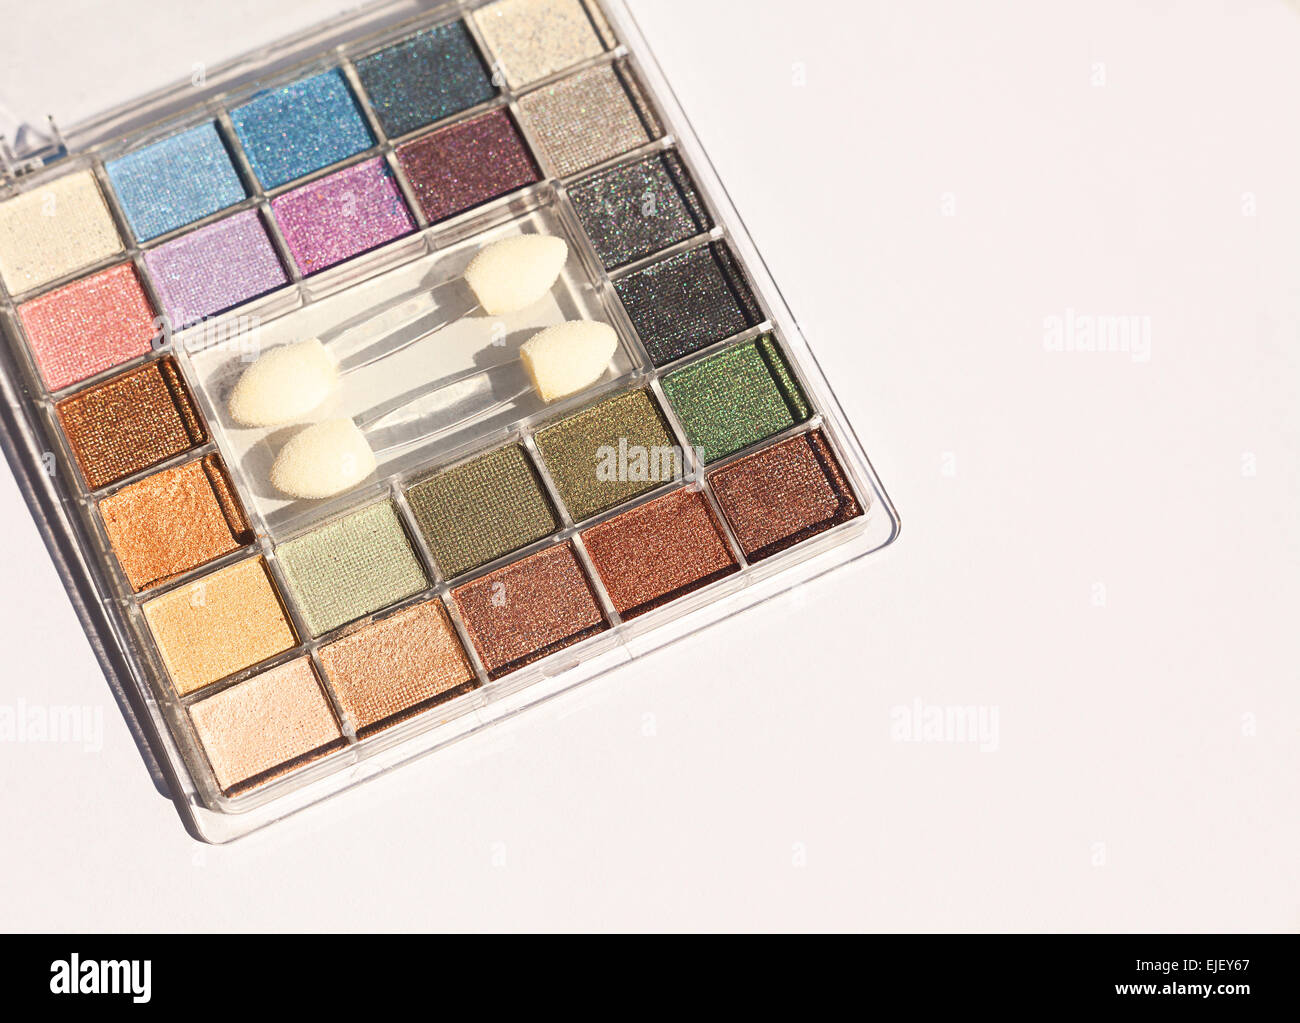 Eyeshadow in various colors, modern makeup. - Stock Image